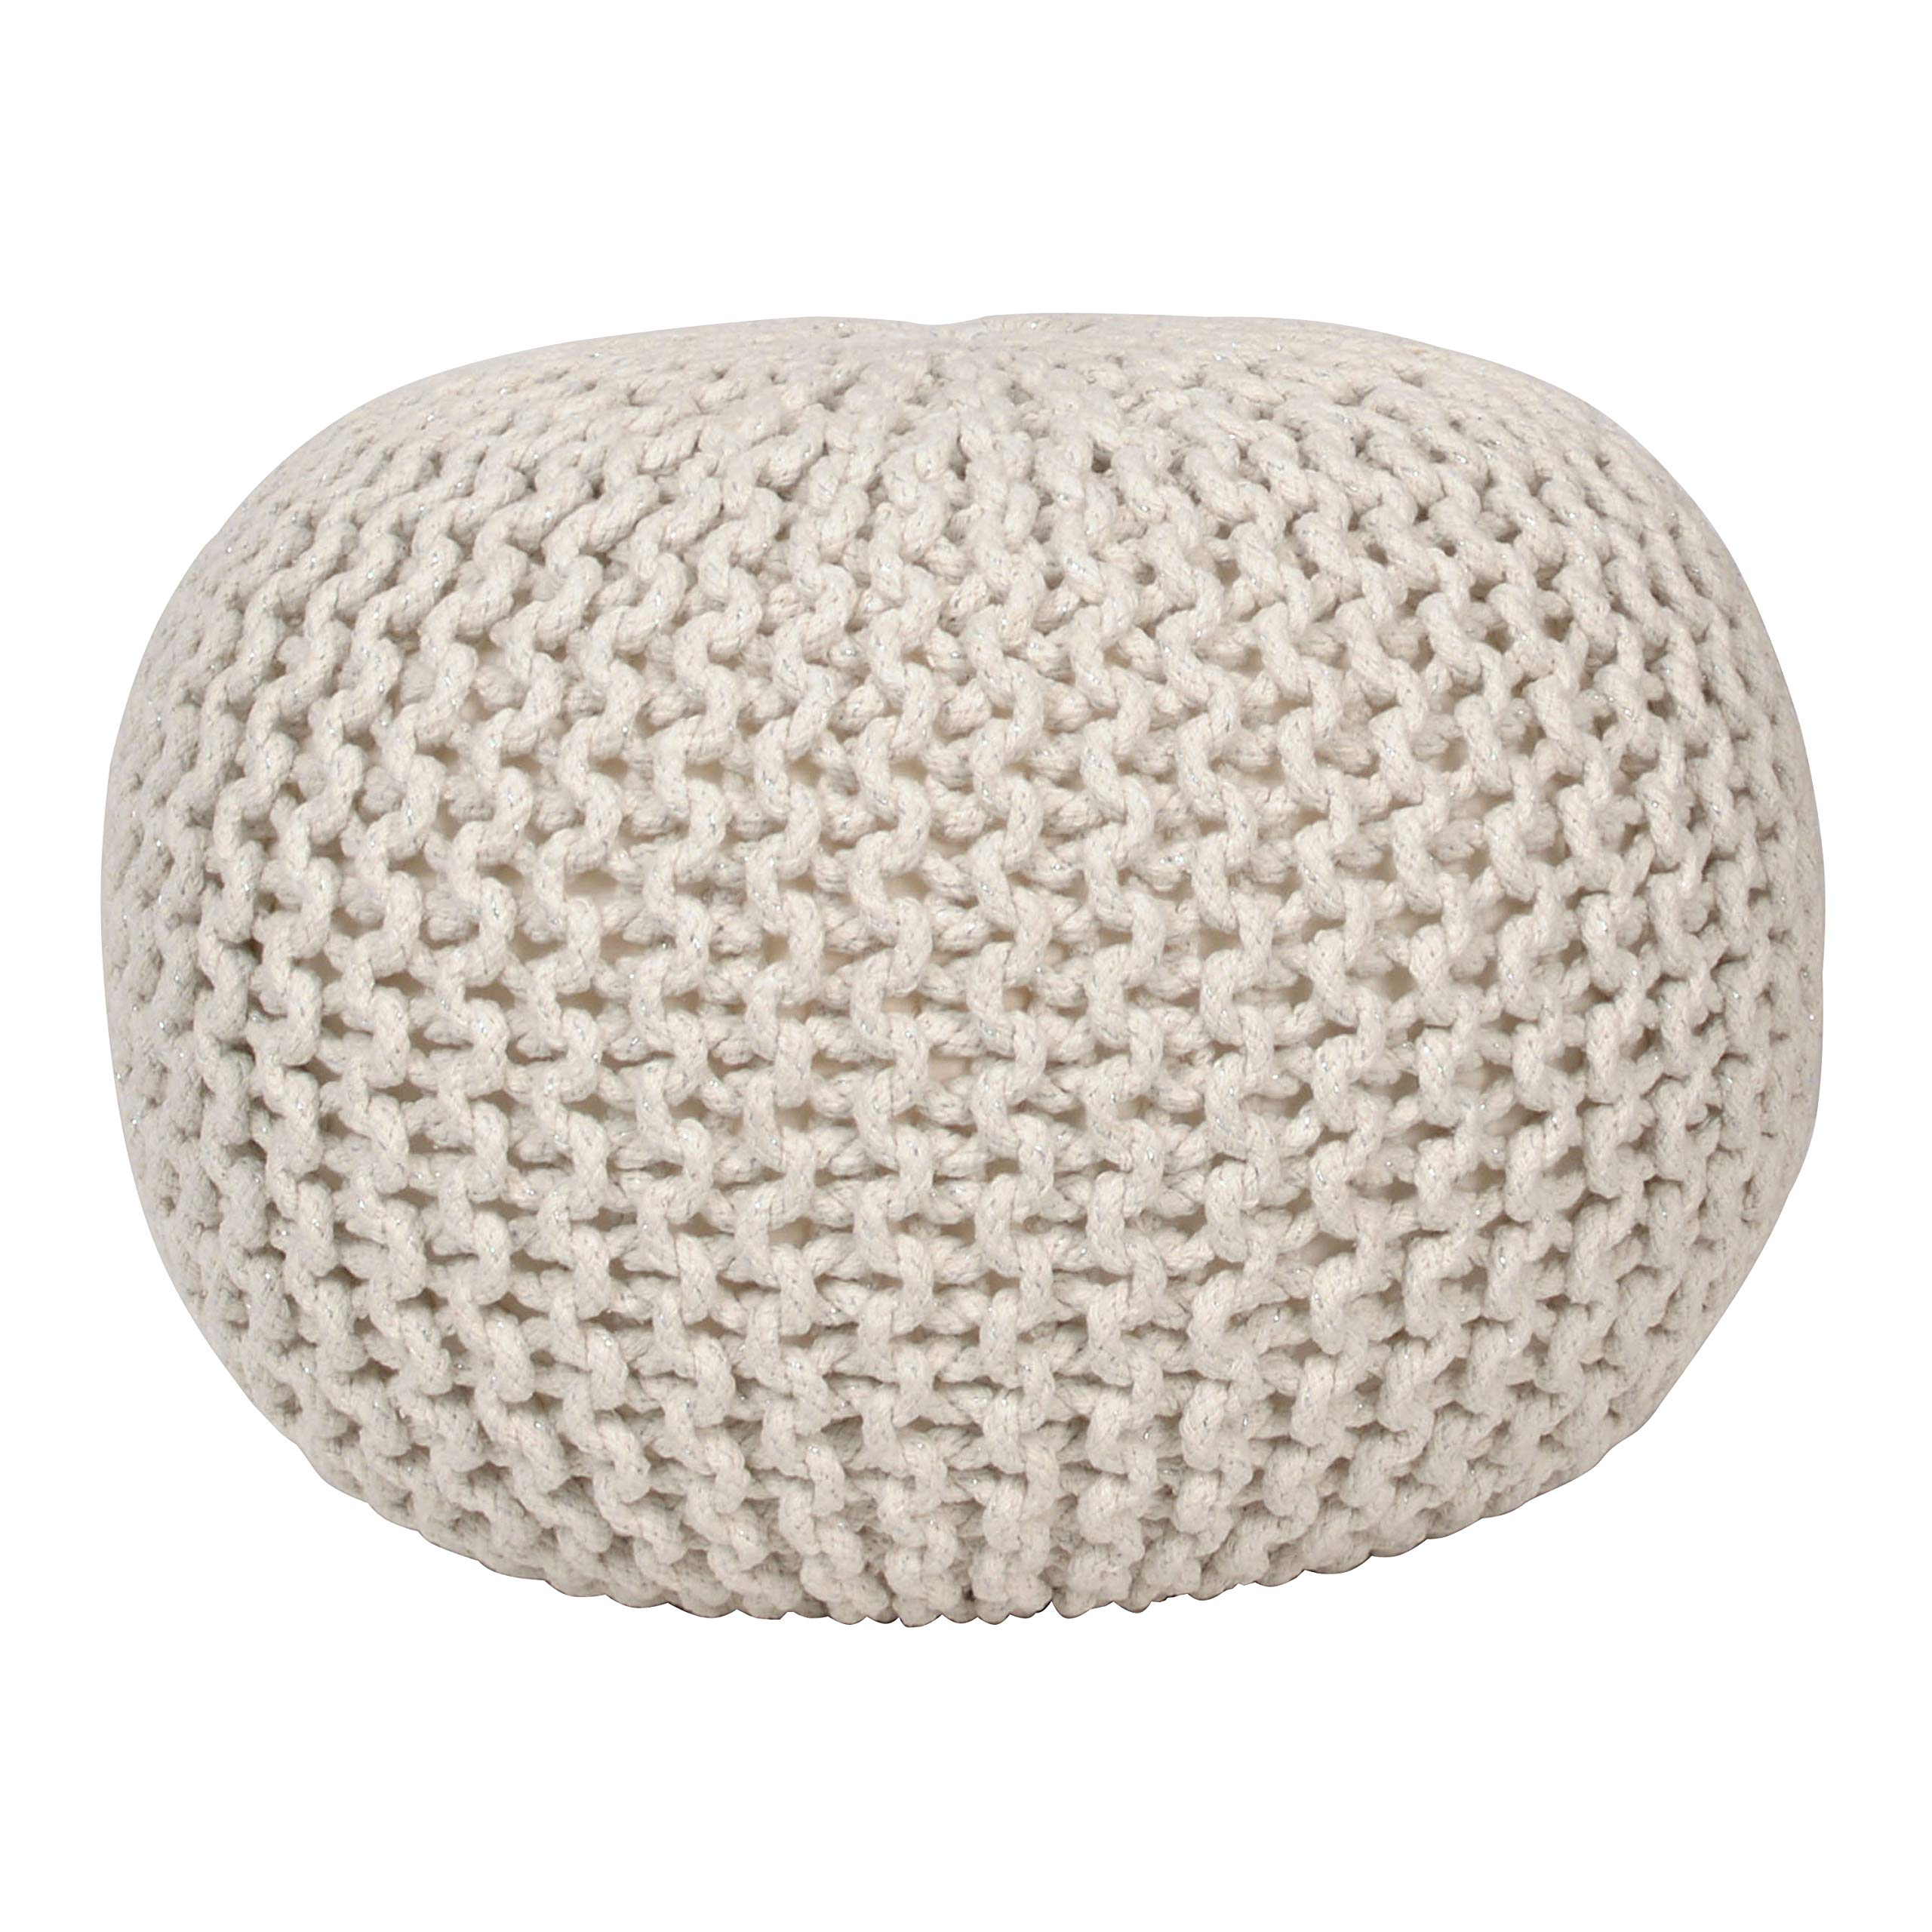 Décor Therapy Lola Round Lurex Pouf, 20x20x14, Off- Off-white by Decor Therapy